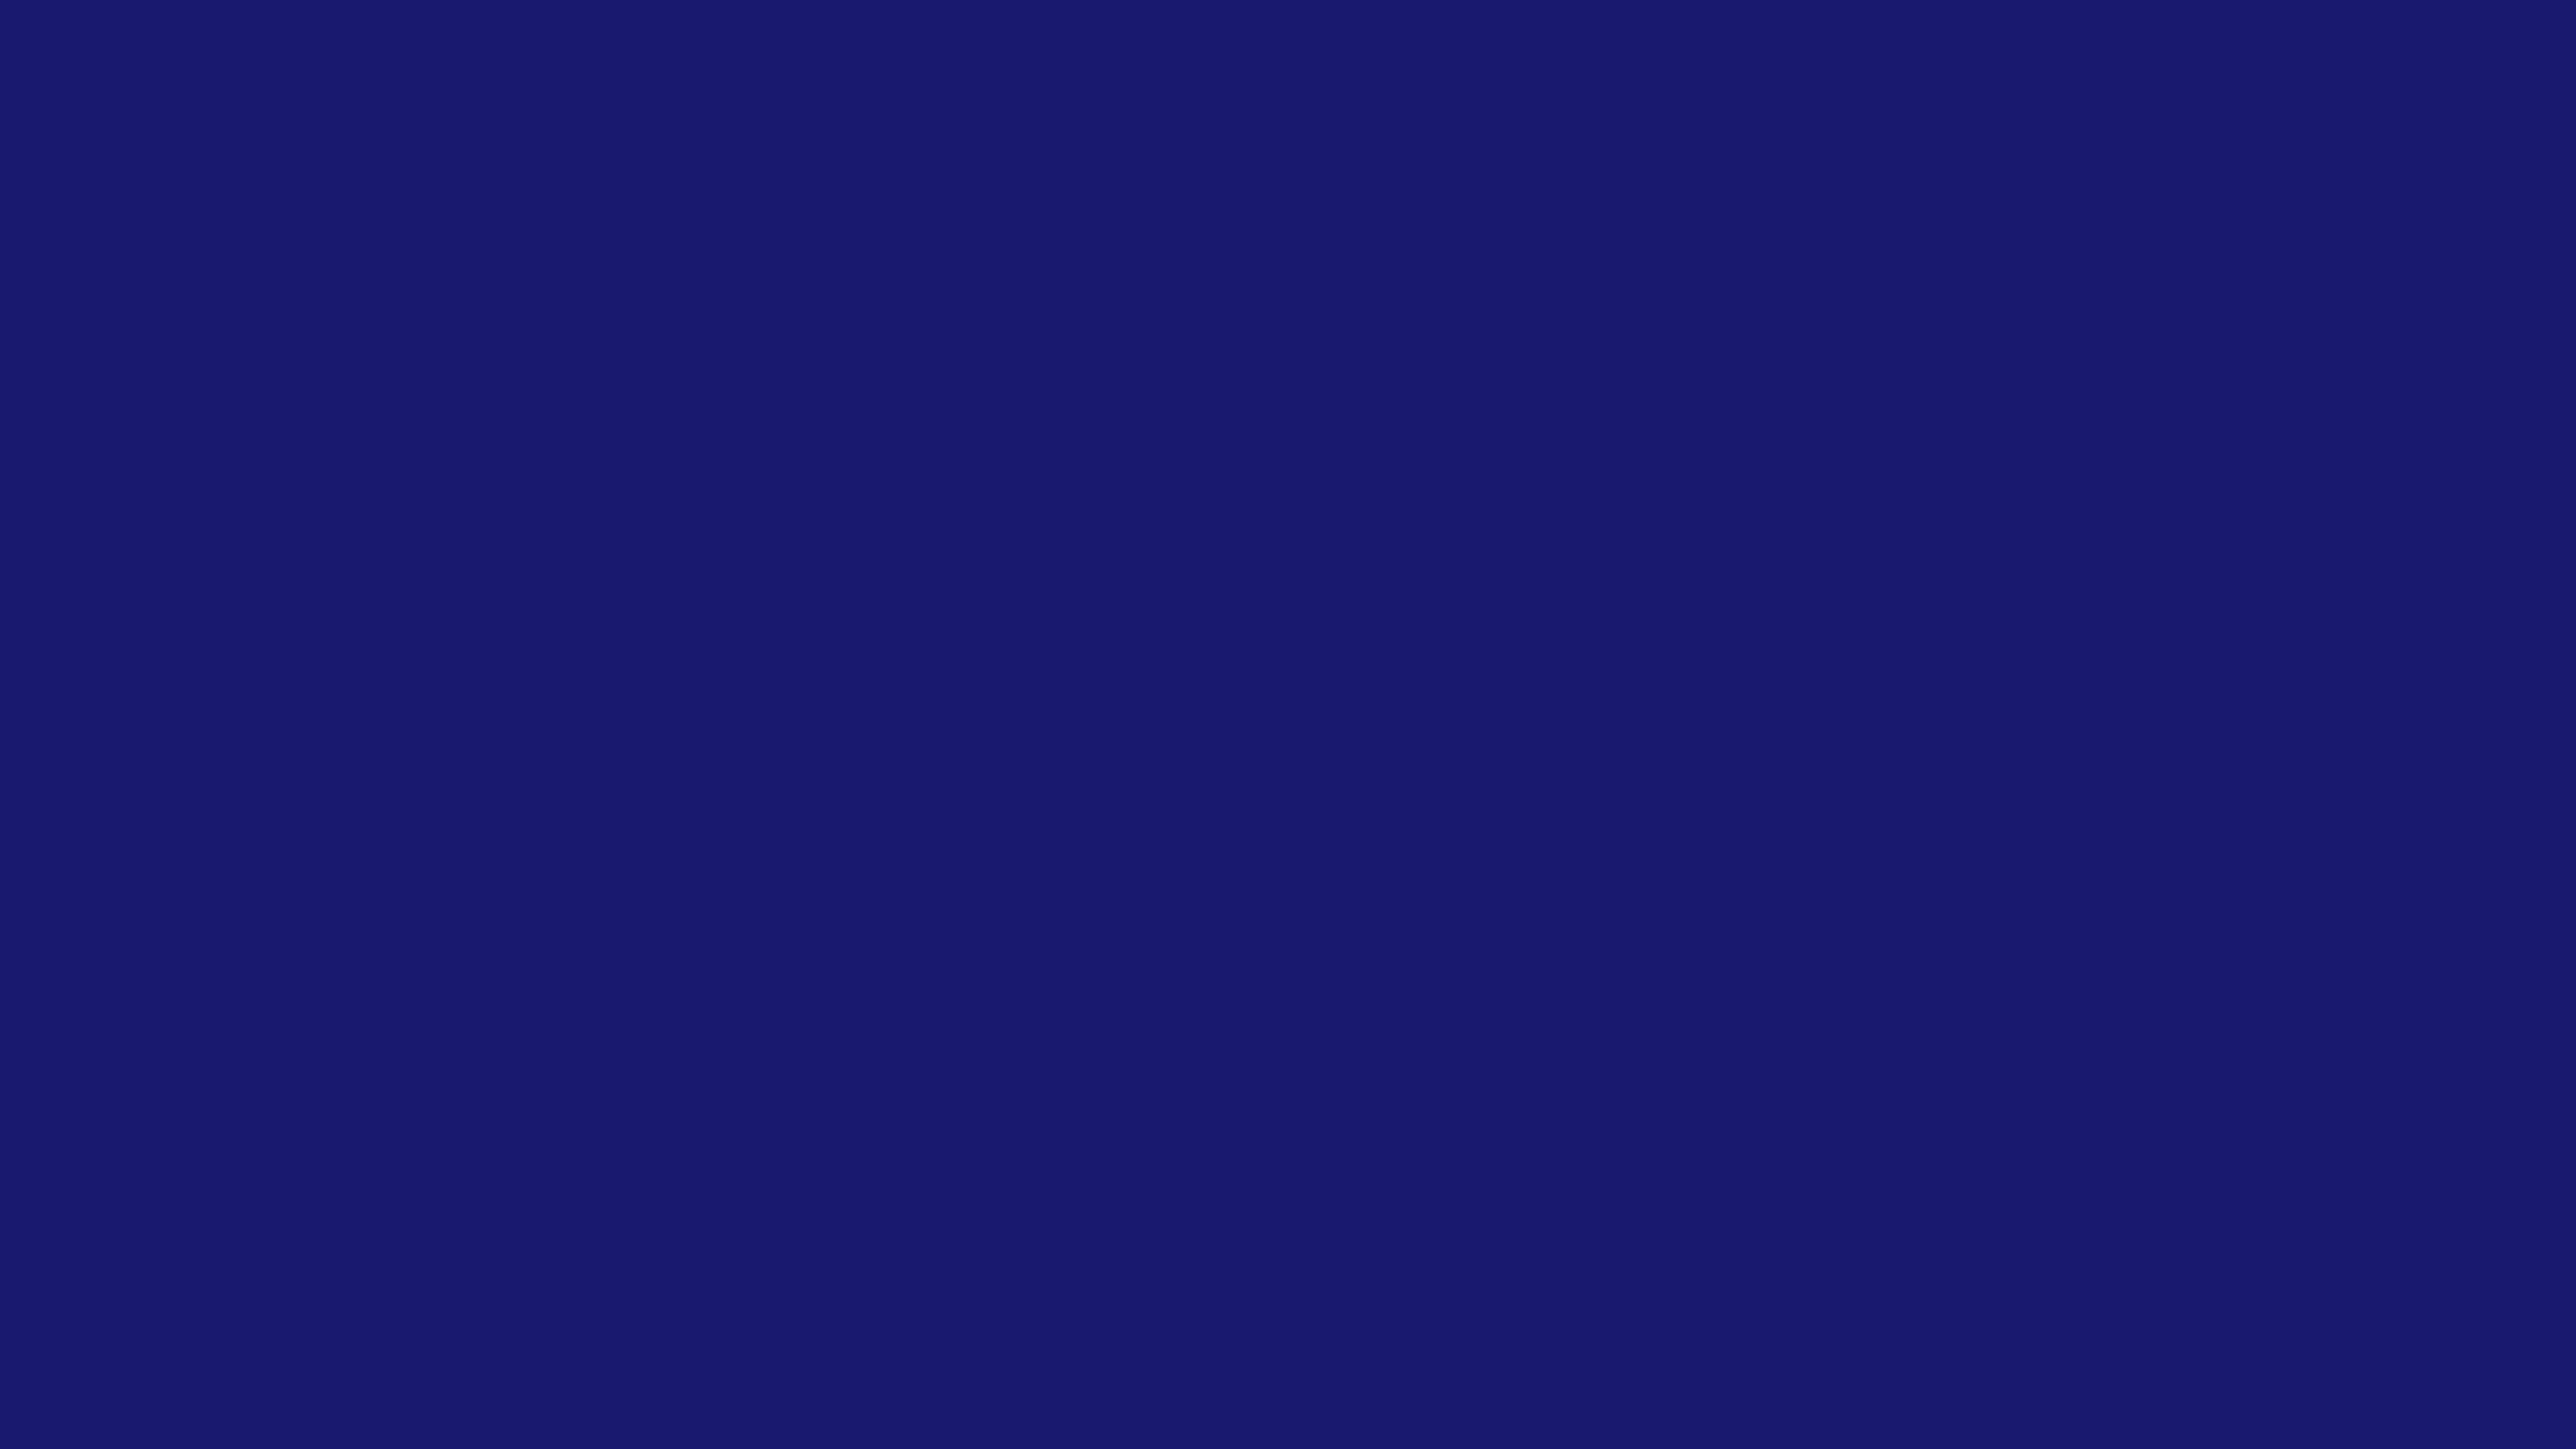 4096x2304 Midnight Blue Solid Color Background